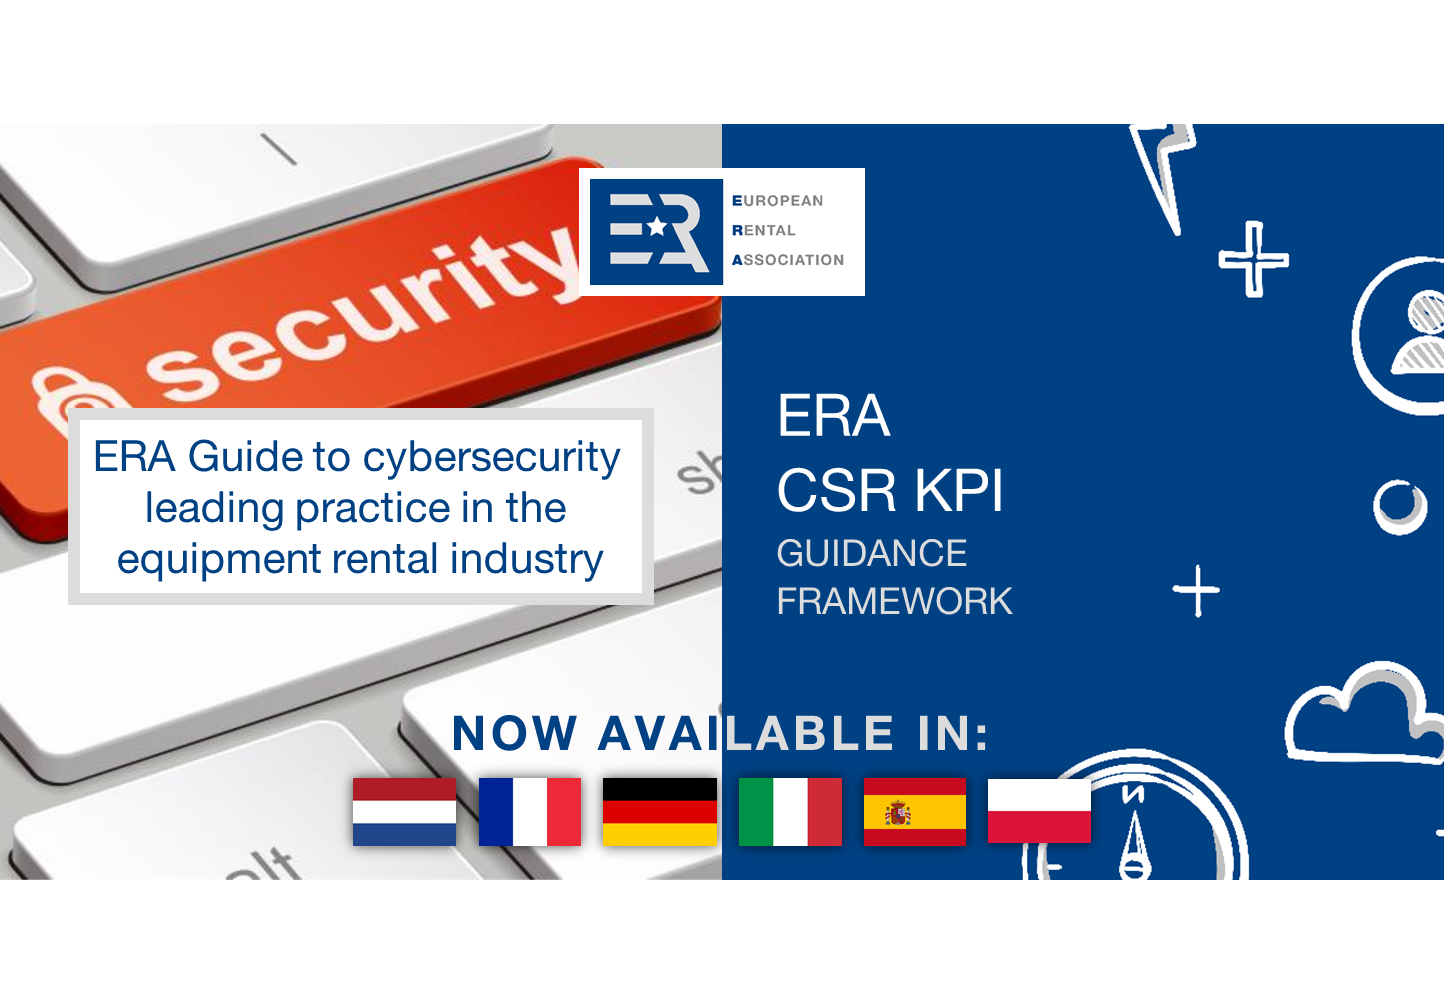 ERA Cybersecurity Guide and CSR KPI Guidance Framework now available in 6 languages